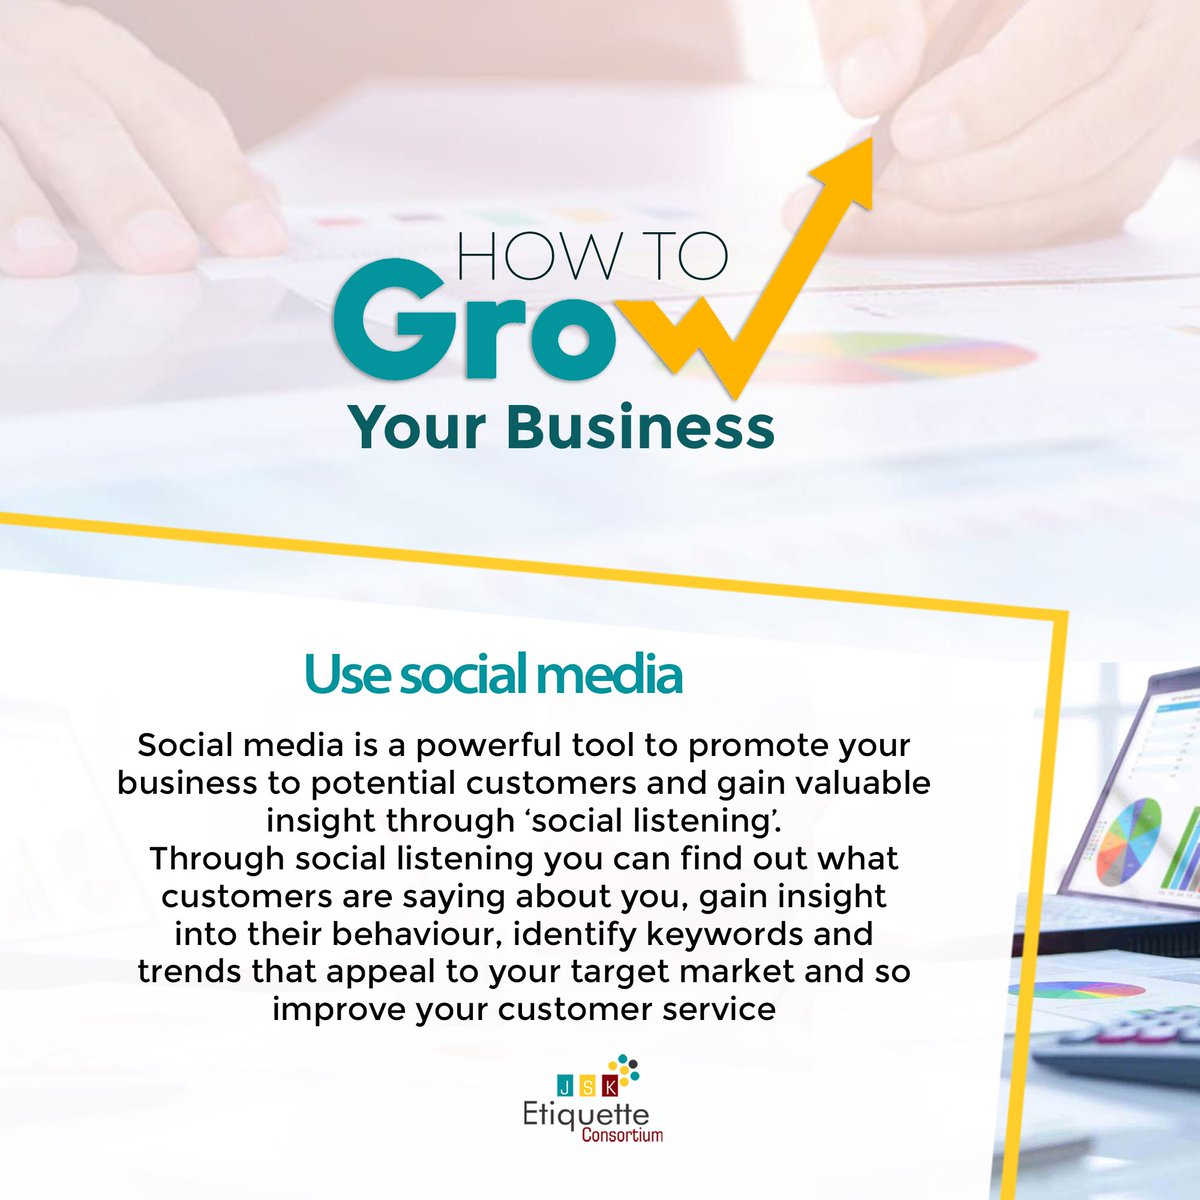 Use social media  Social media is a powerful tool to promote your business to potential customers and gain valuable insight through 'social listening'. . #jsketiquette #businesssuccess #businessgrowth #enterpreneurship #businessdevelopment #business #hustlersquare #socialmediapic.twitter.com/WpnyabPPBI